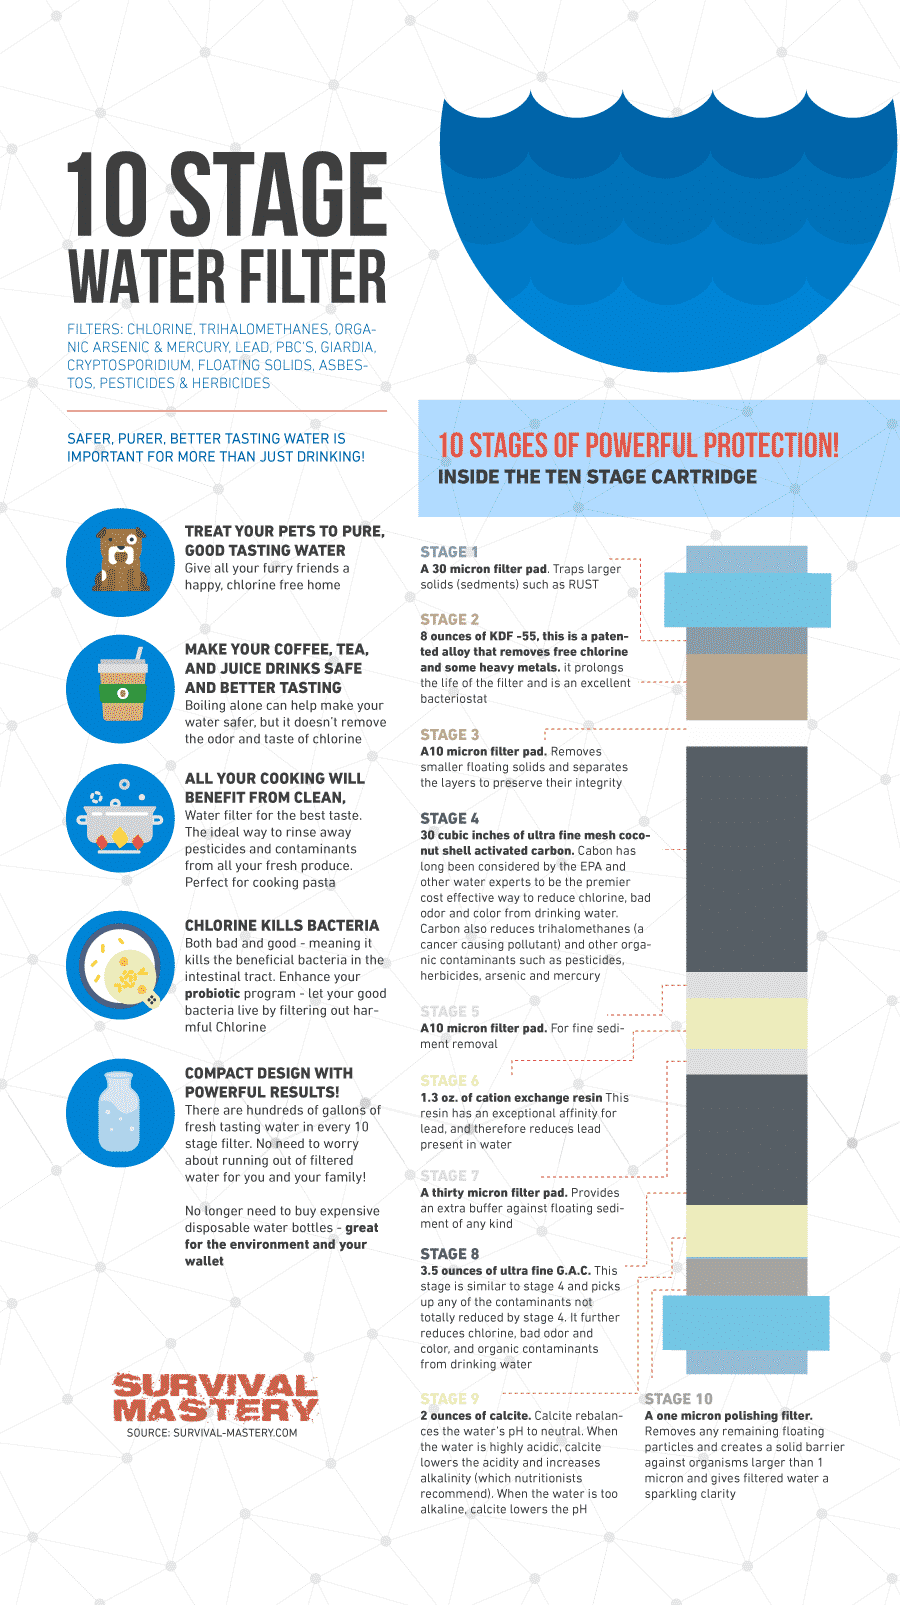 10 stage water filter infographic